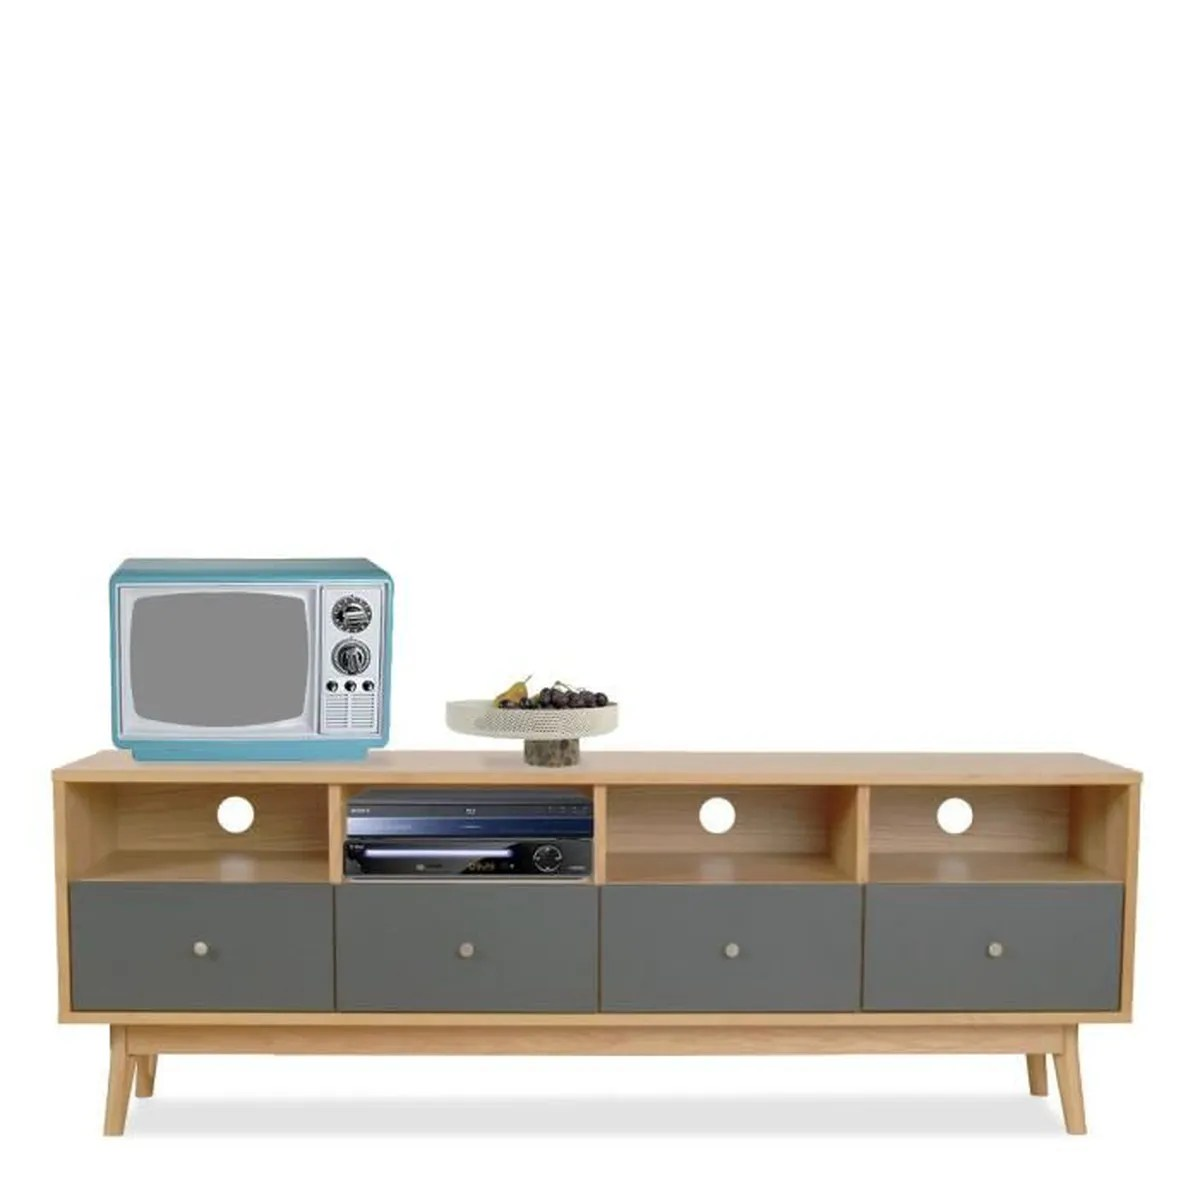 Meuble Tv C Discount C Discount Meuble Tv Maison Design Wiblia